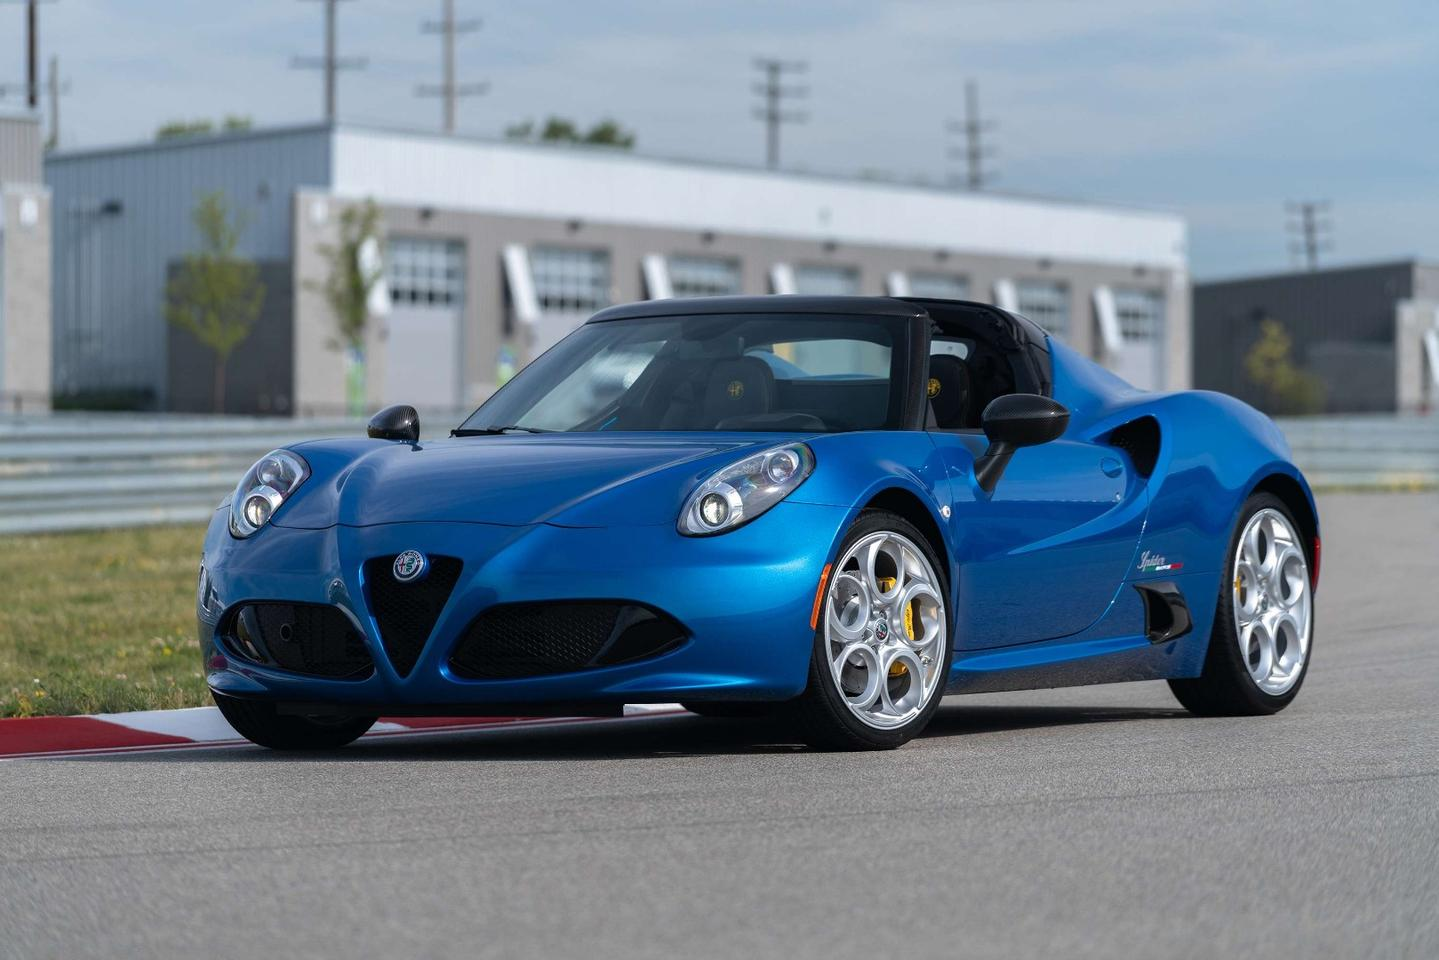 The Misano Blue Metallic exterior paint will only be found on the Italia model, as will the piano black front air intake and rear diffuser